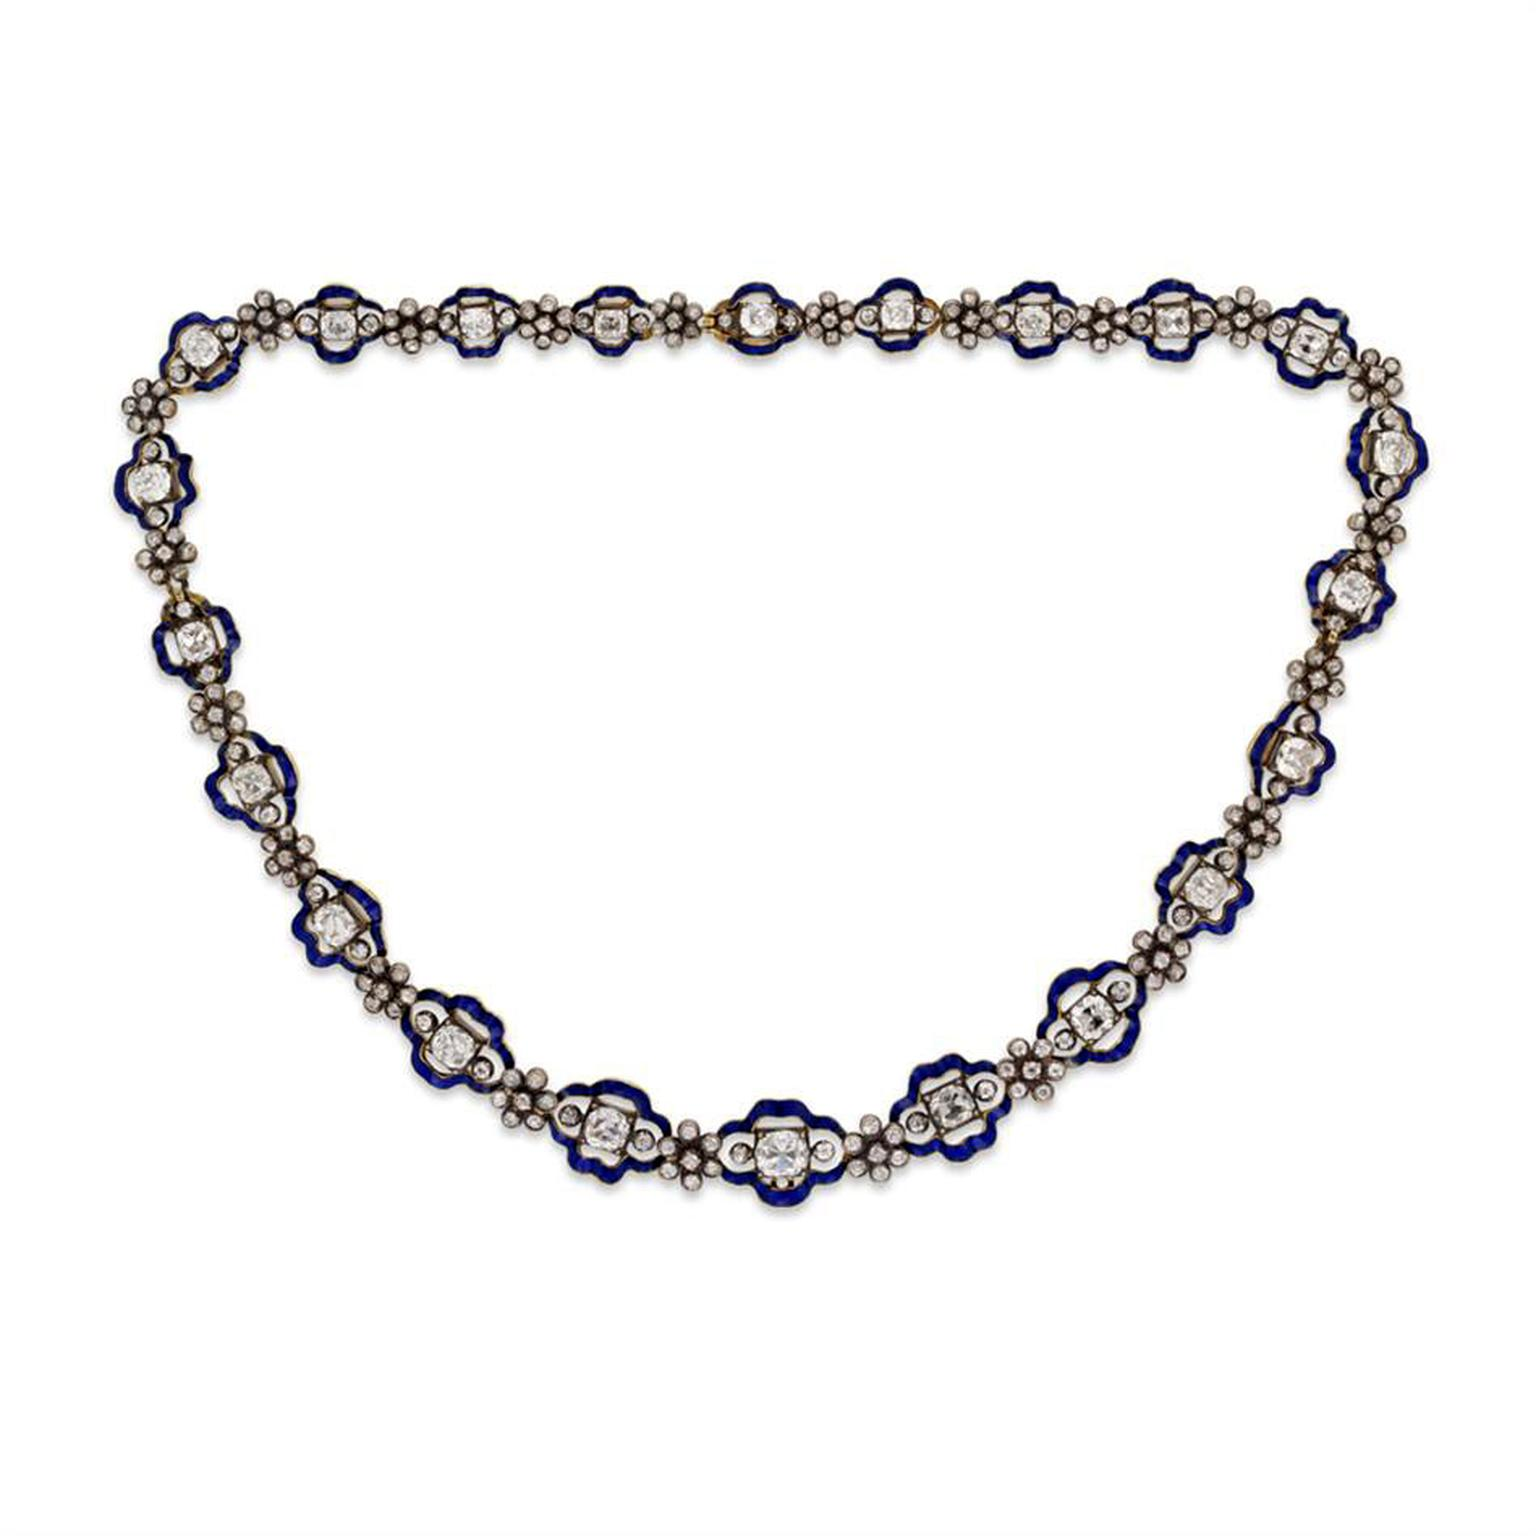 Bentley & Skinner Regency diamond and blue enamel cluster necklace